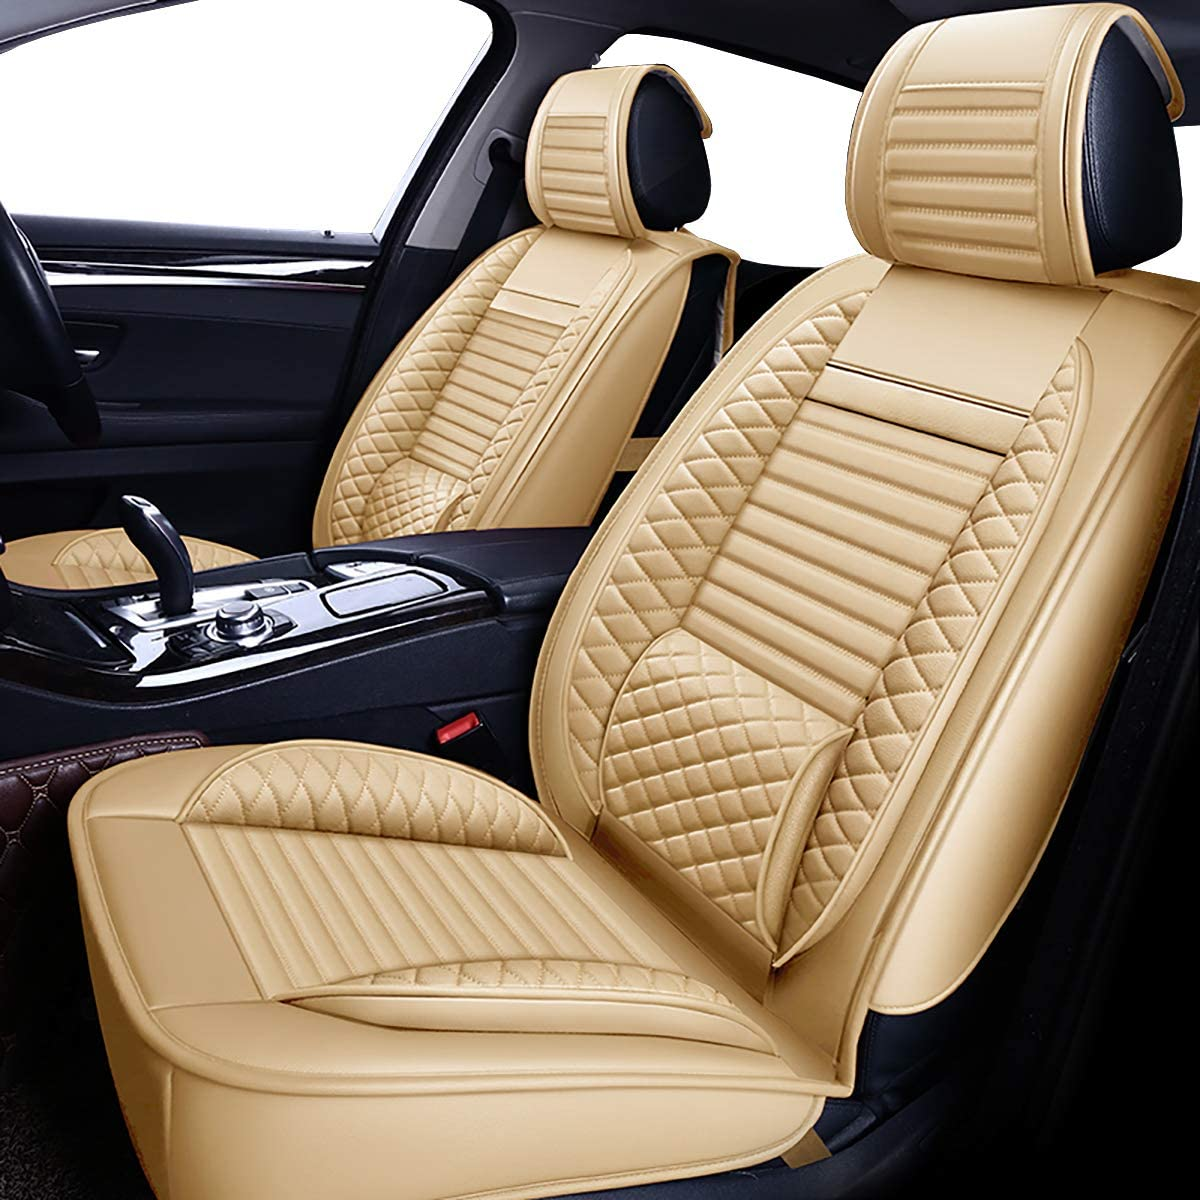 SUV and Small Pick-Up Truck Front, TAN OASIS AUTO OS-002 Leather Universal Car Seat Covers Automotive Vehicle Cushion for Sedan